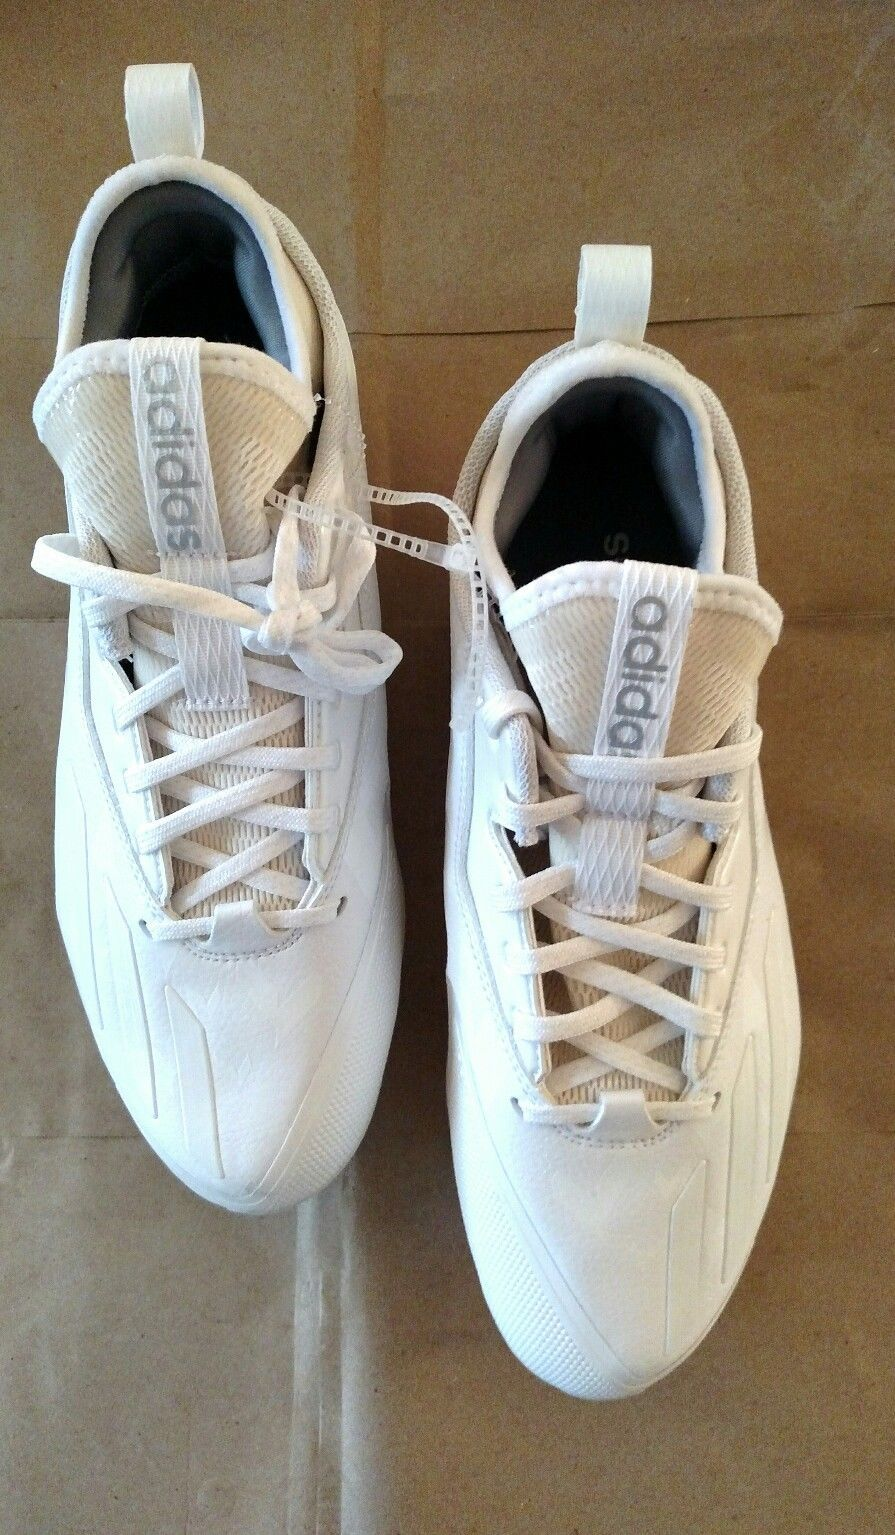 806dee2094a3 57. 57. Previous. Adidas Energy Boost Icon 2 2.0 Metal Baseball Cleats  B27499 White Size 8. Adidas Energy Boost ...